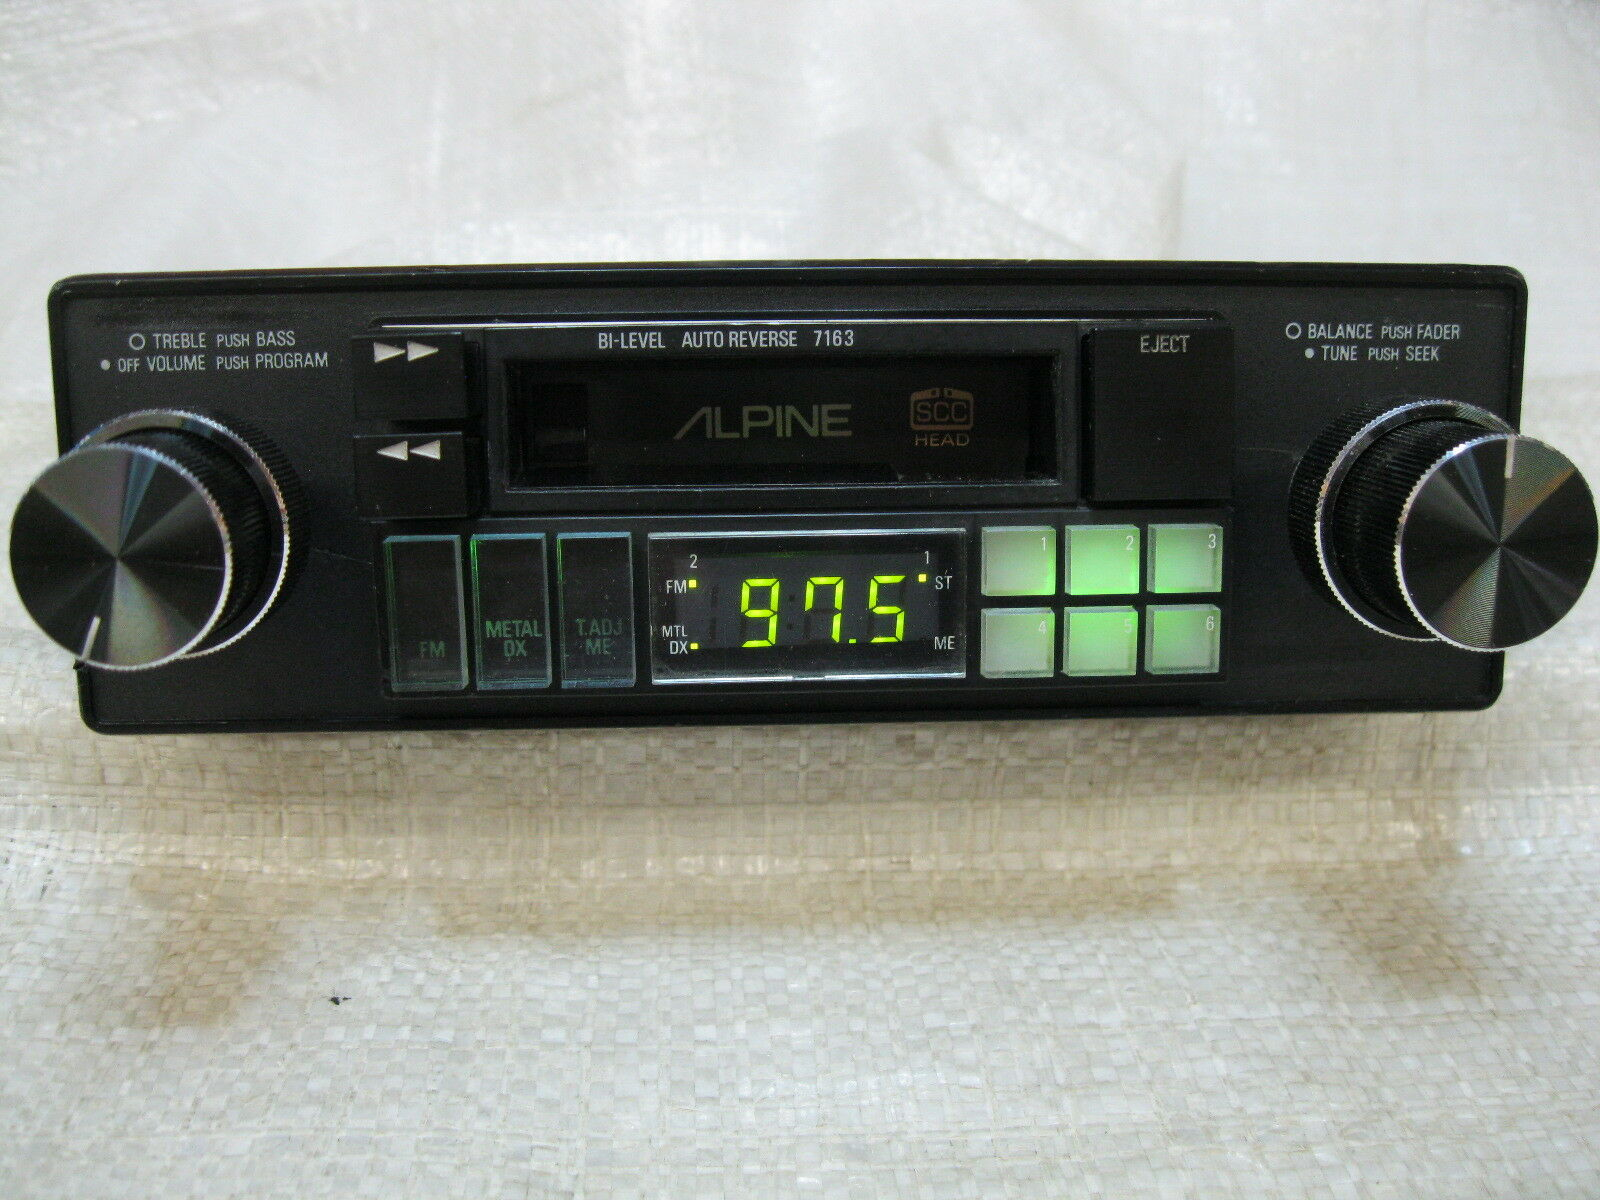 Alpine 7163 Wiring Harness Worksheet And Diagram Cde 9881 Am Fm Cassette Radio Knob Shaft Style Vintage Old Rh Picclick Com Stereo